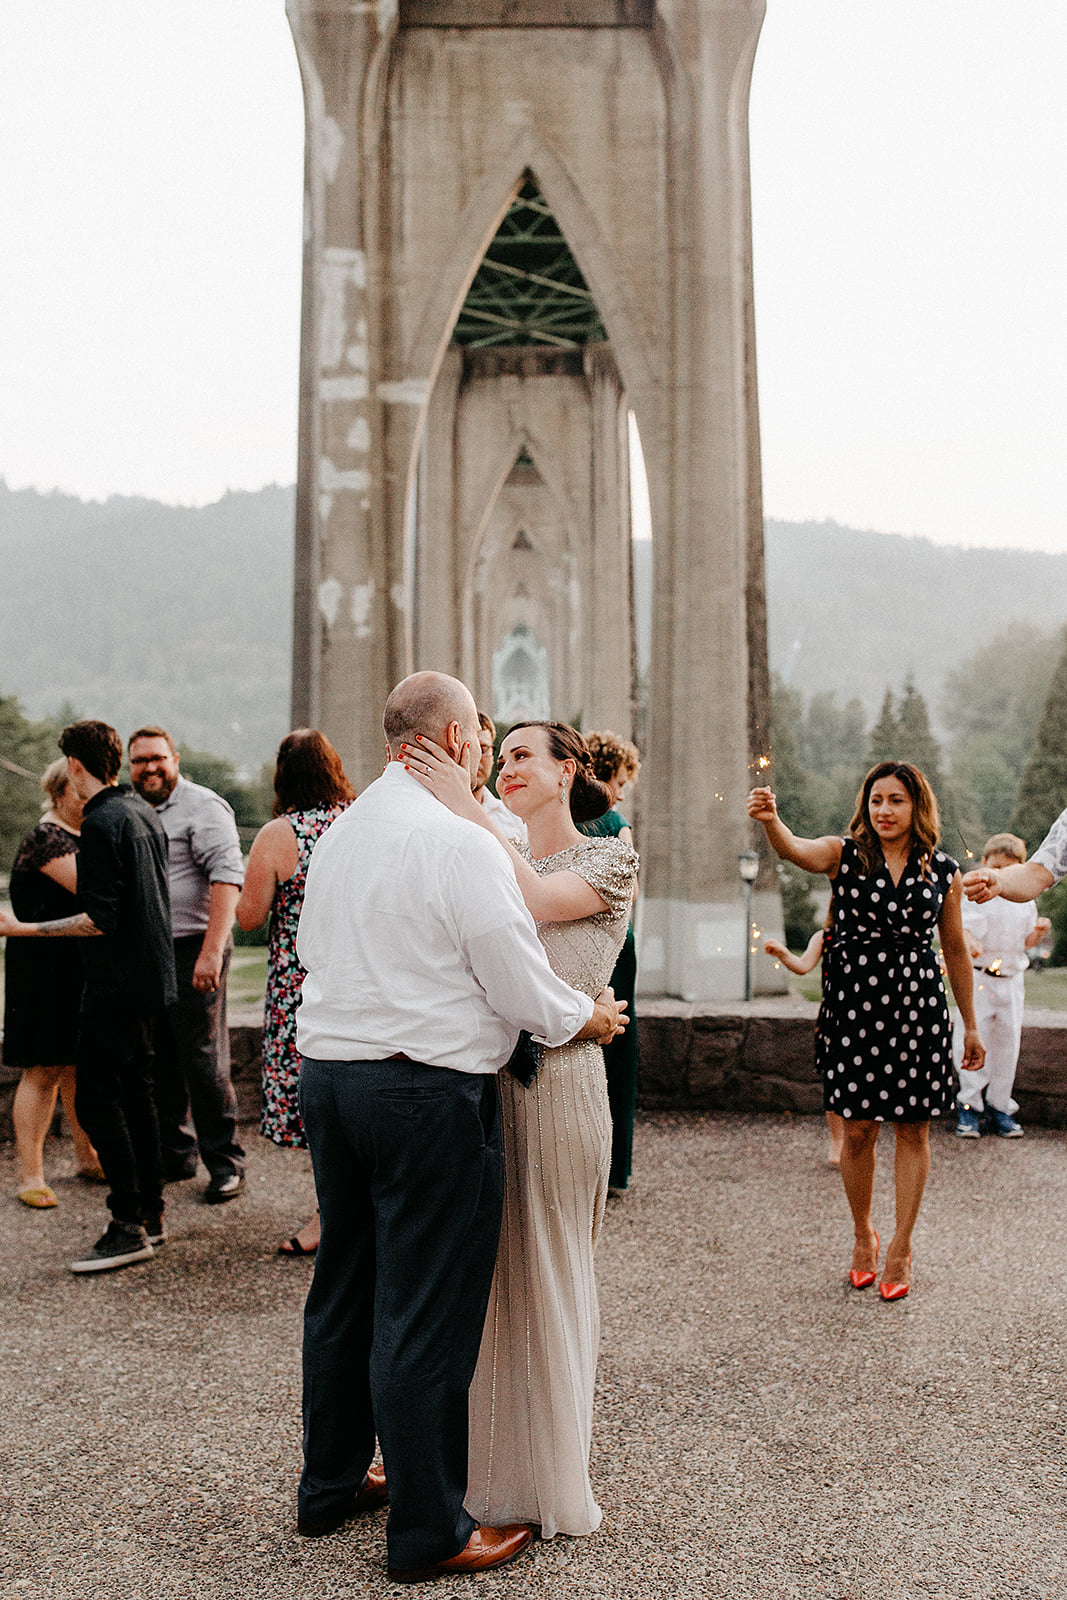 Next up, the story of Ali & Adam - living and loving life as an engaged couple in Portland (Image: Alexandra Celia / Seattle Refined).